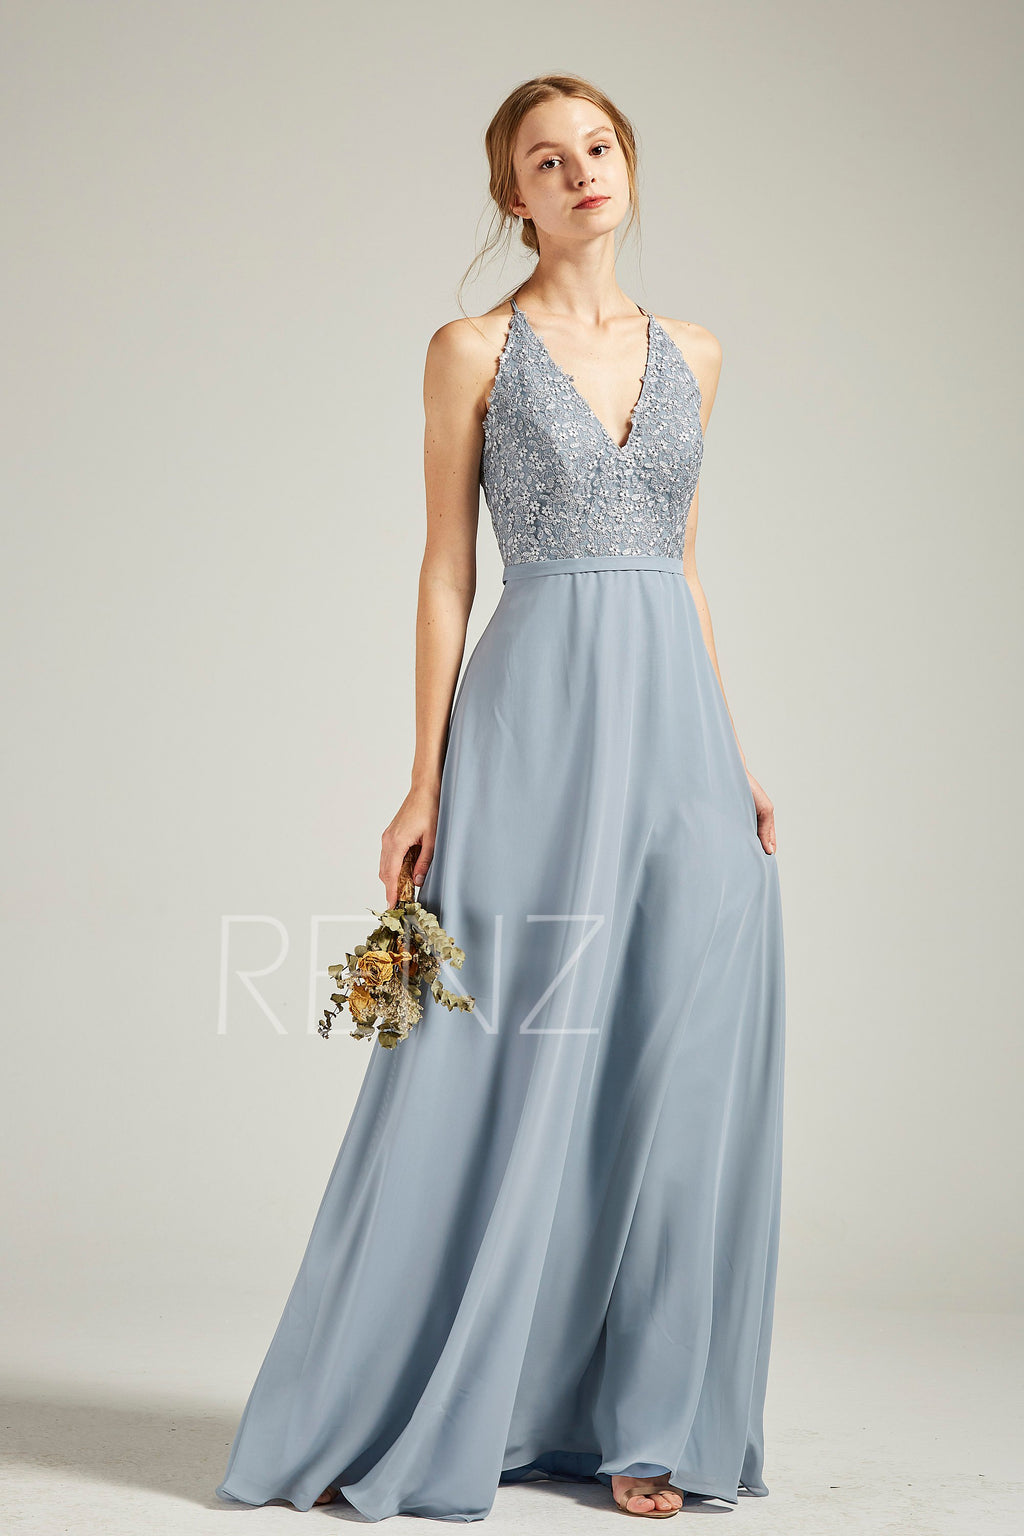 Prom Dress Long Dusty Blue Chiffon Bridesmaid Dress Wedding Dress V Neck Halter Maxi Dress Lace Deep V Back Flowy Formal Dress (H738)